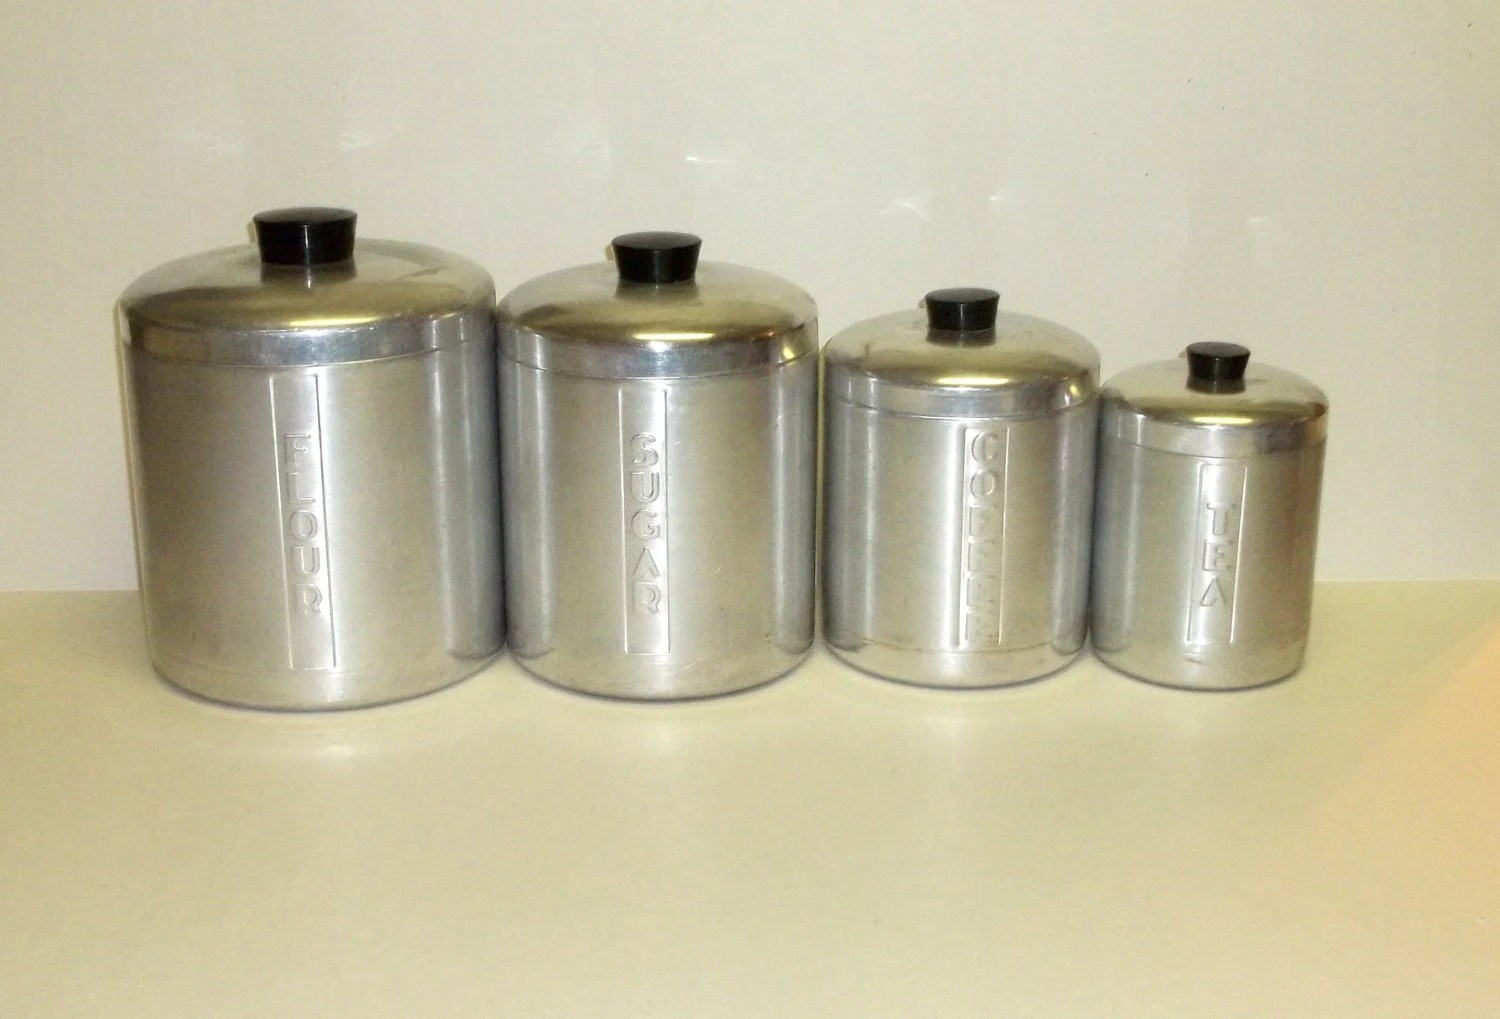 Silver Tea Coffee Sugar Canisters >> Aluminum Canisters Flour ,Sugar ,Coffee ,Tea ,Holder Vintage Atomic Containers ,Set of 4 1960s ...